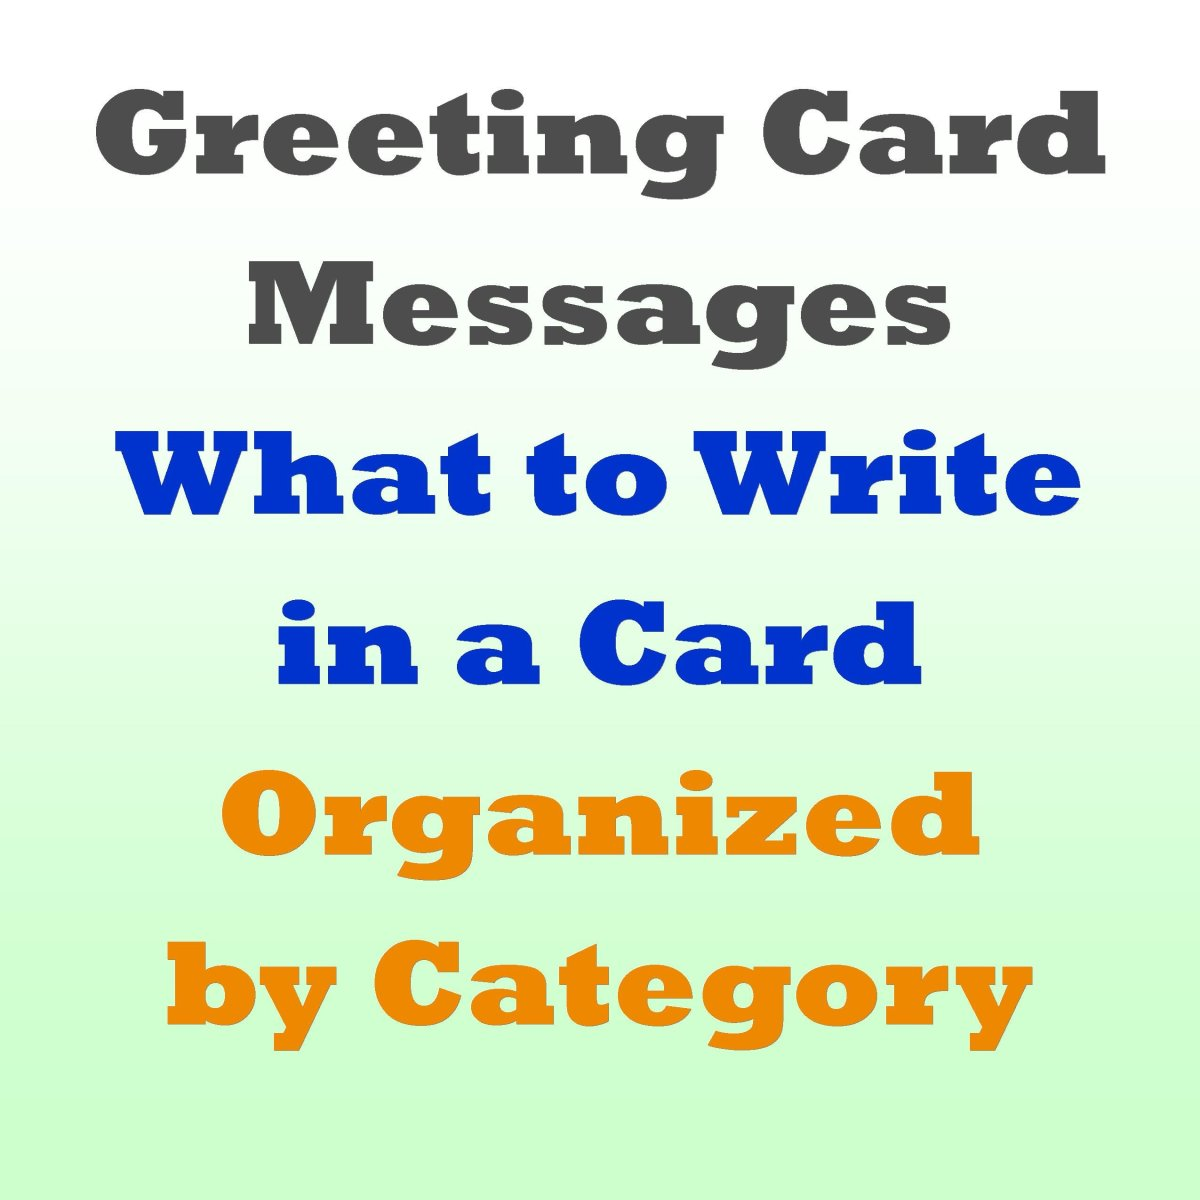 Examples of what to write in many different types of greeting cards nB0QGxm3